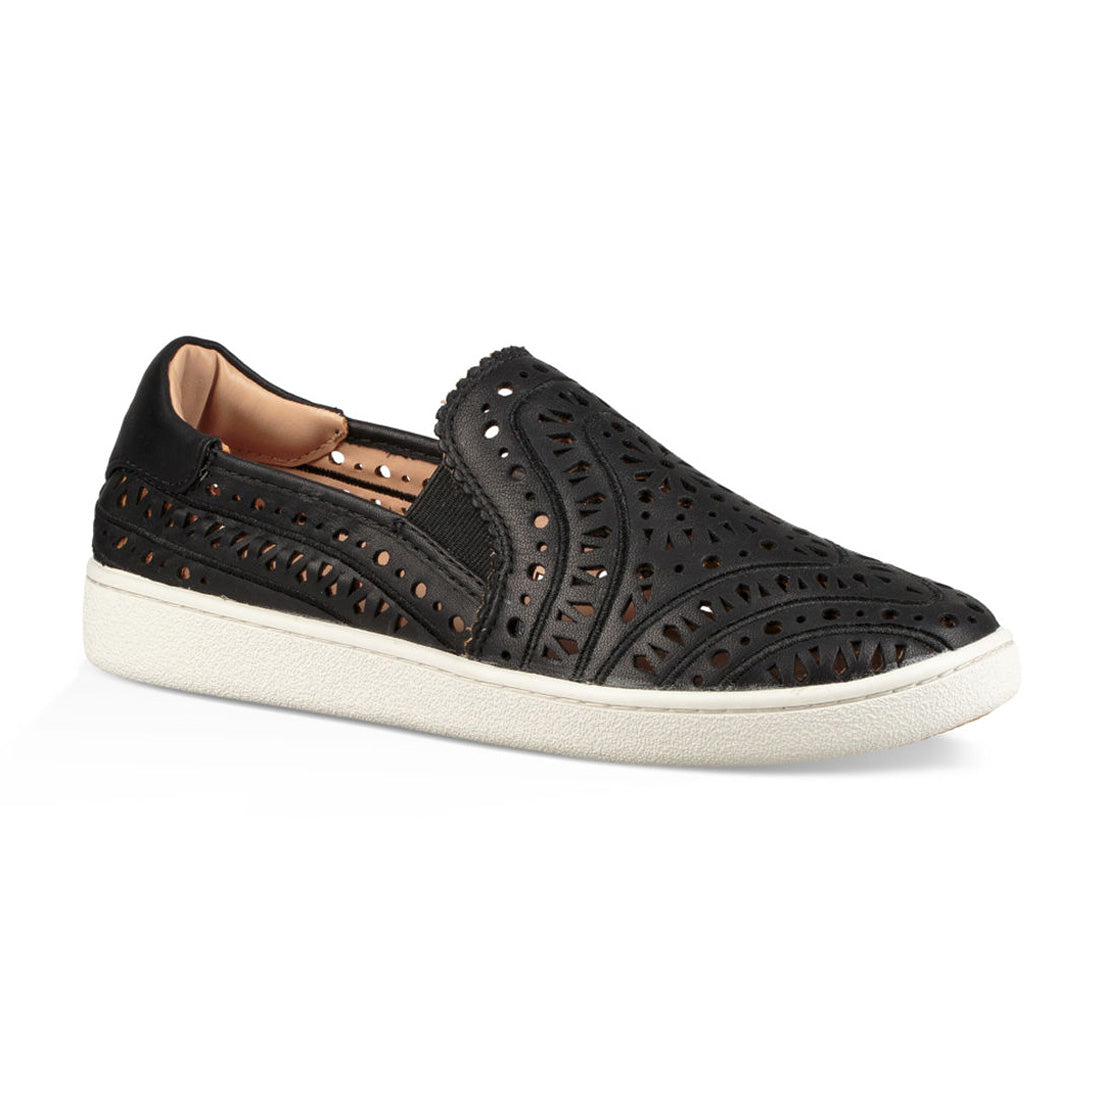 Women's Shoes – Vamps NYC